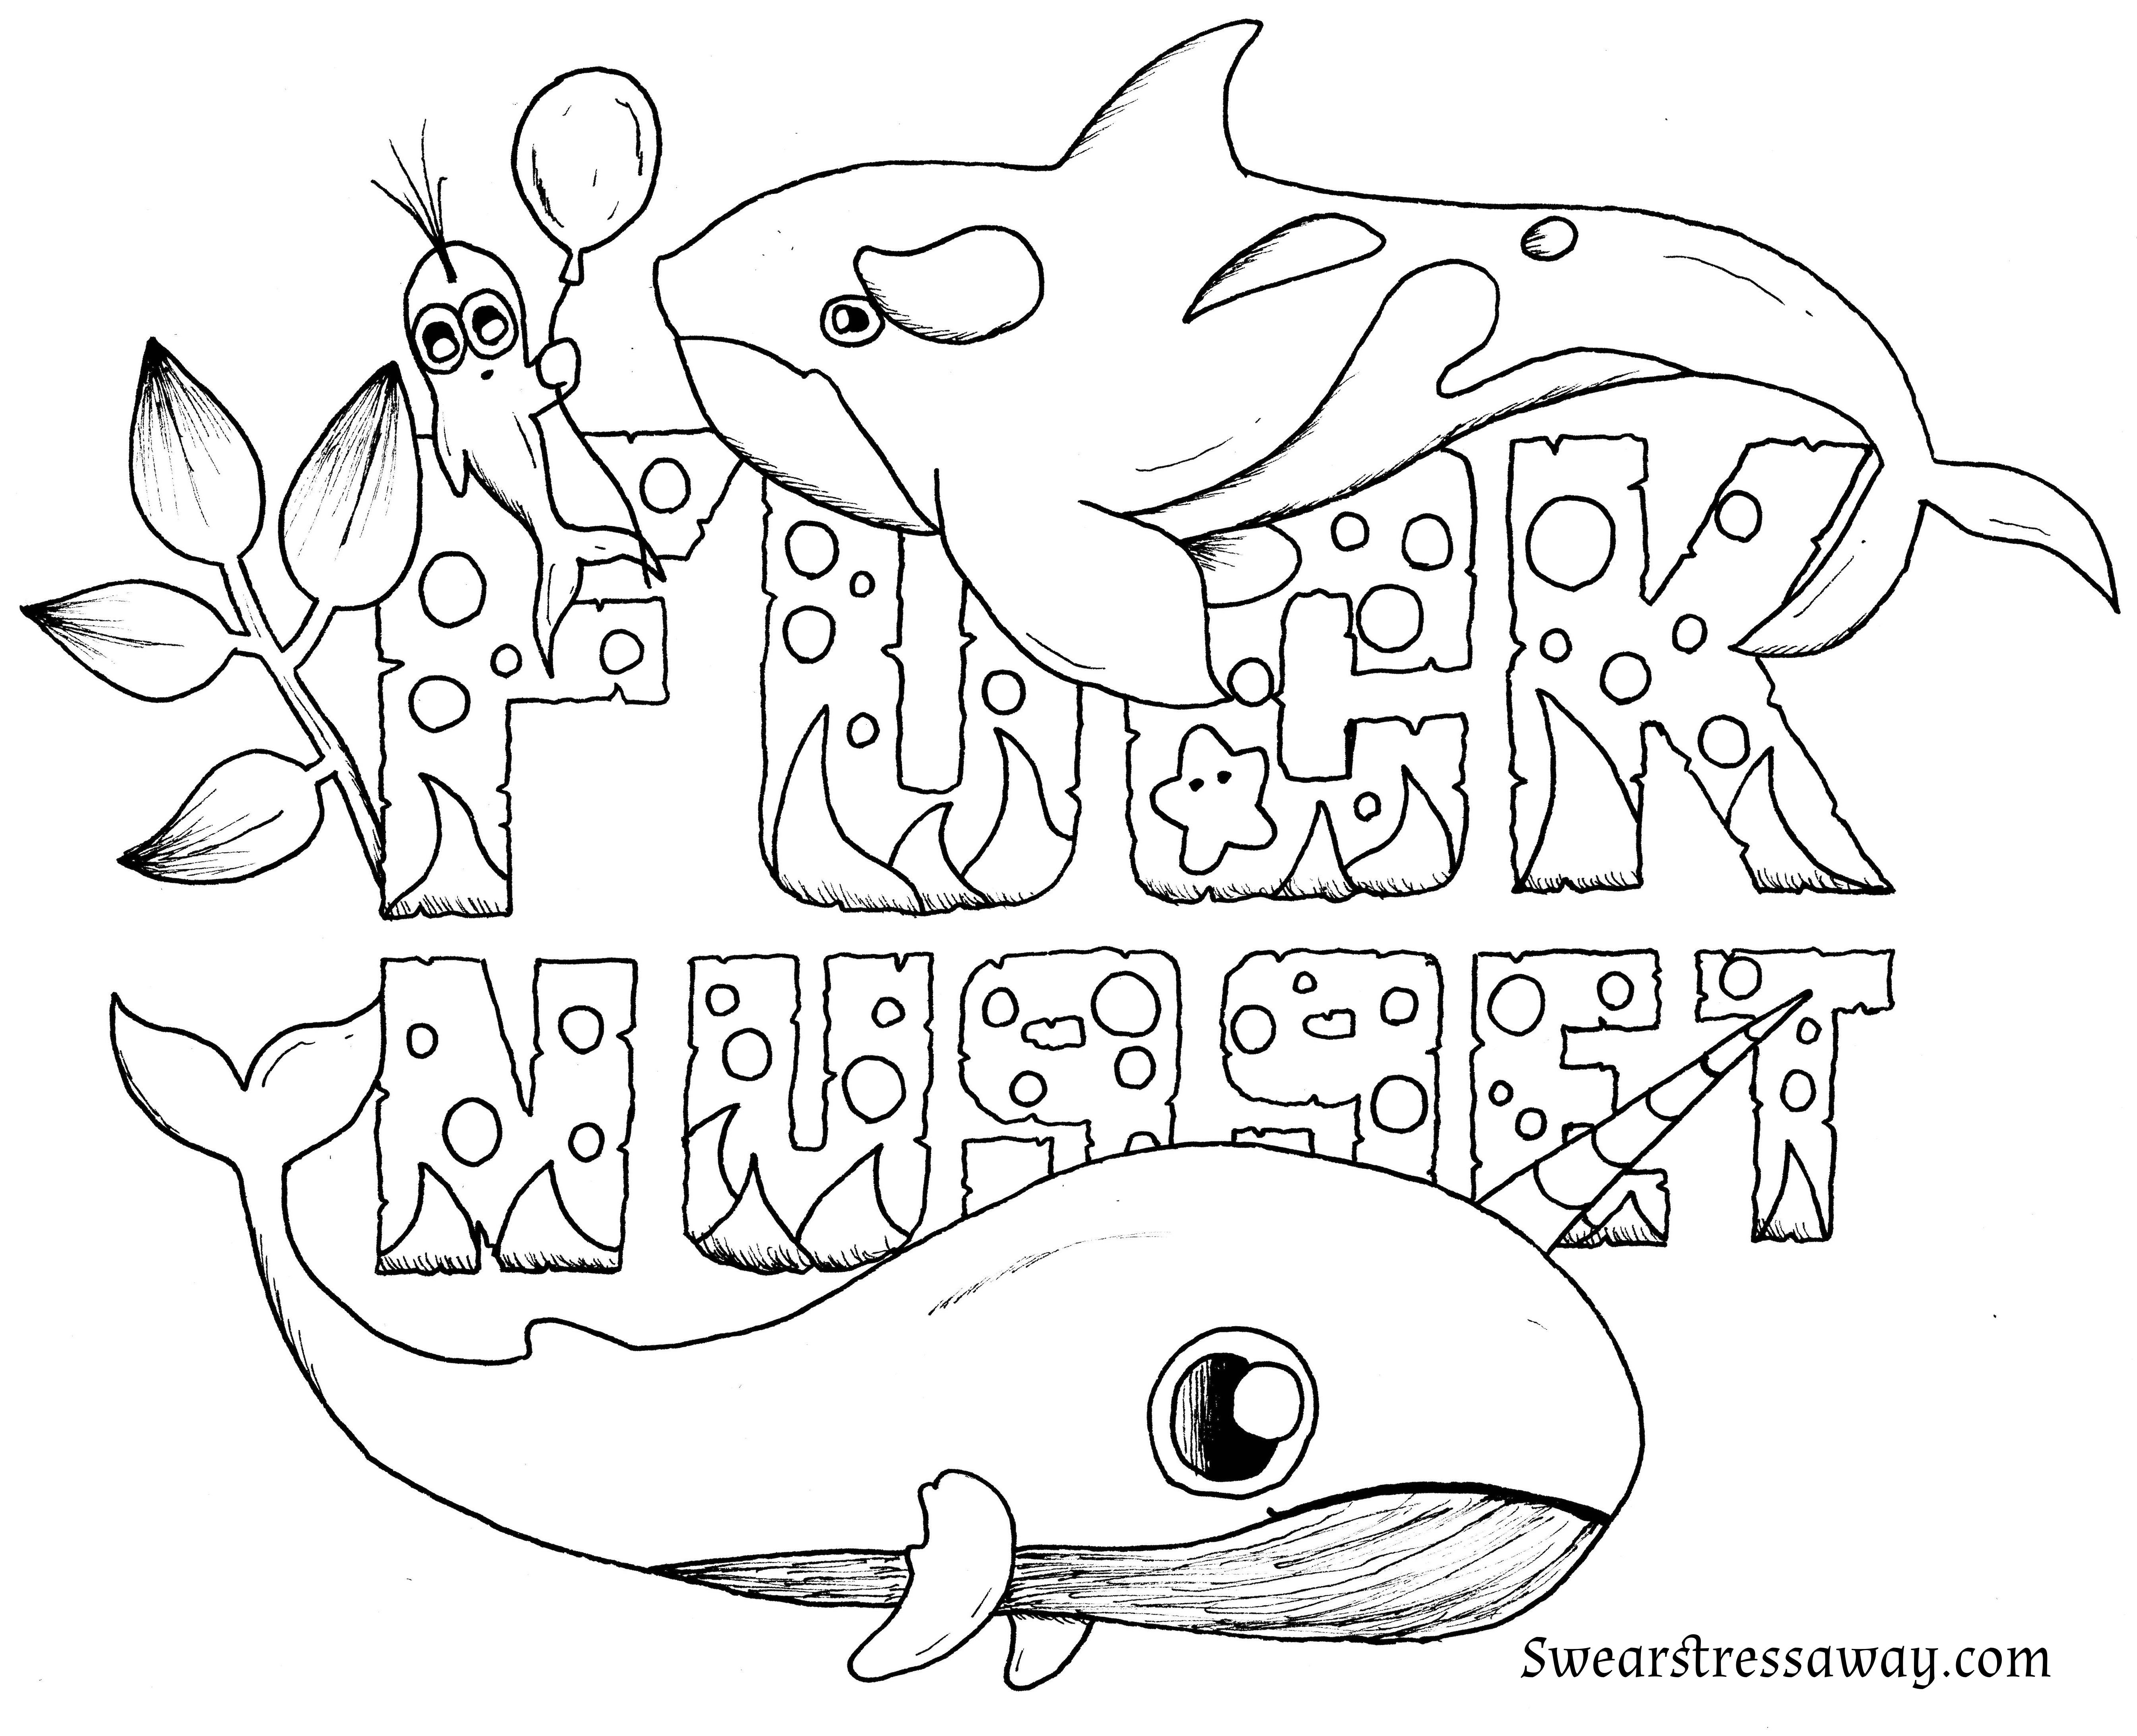 - Fucknugget - Swear Word Coloring Page - Adult Coloring Page